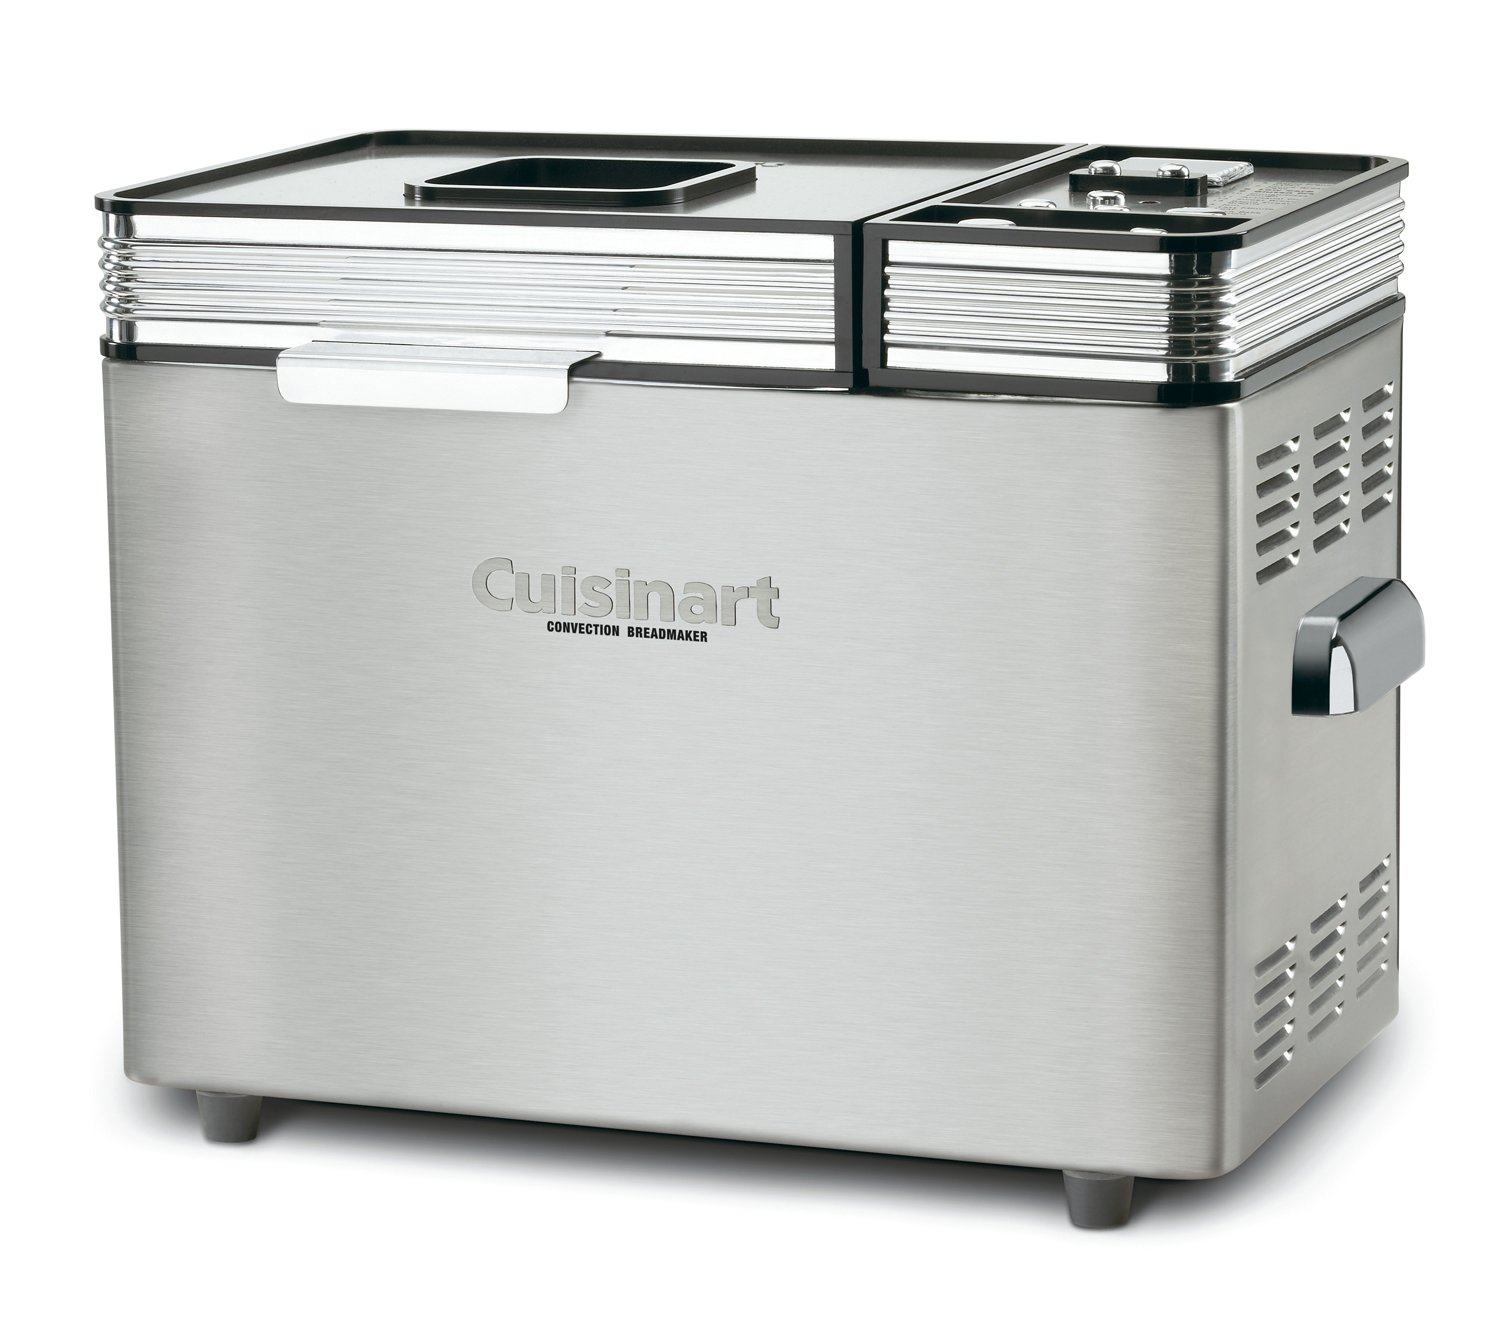 Cuisinart-CBK-200-2-Pound-Convection-Automatic-Breadmaker